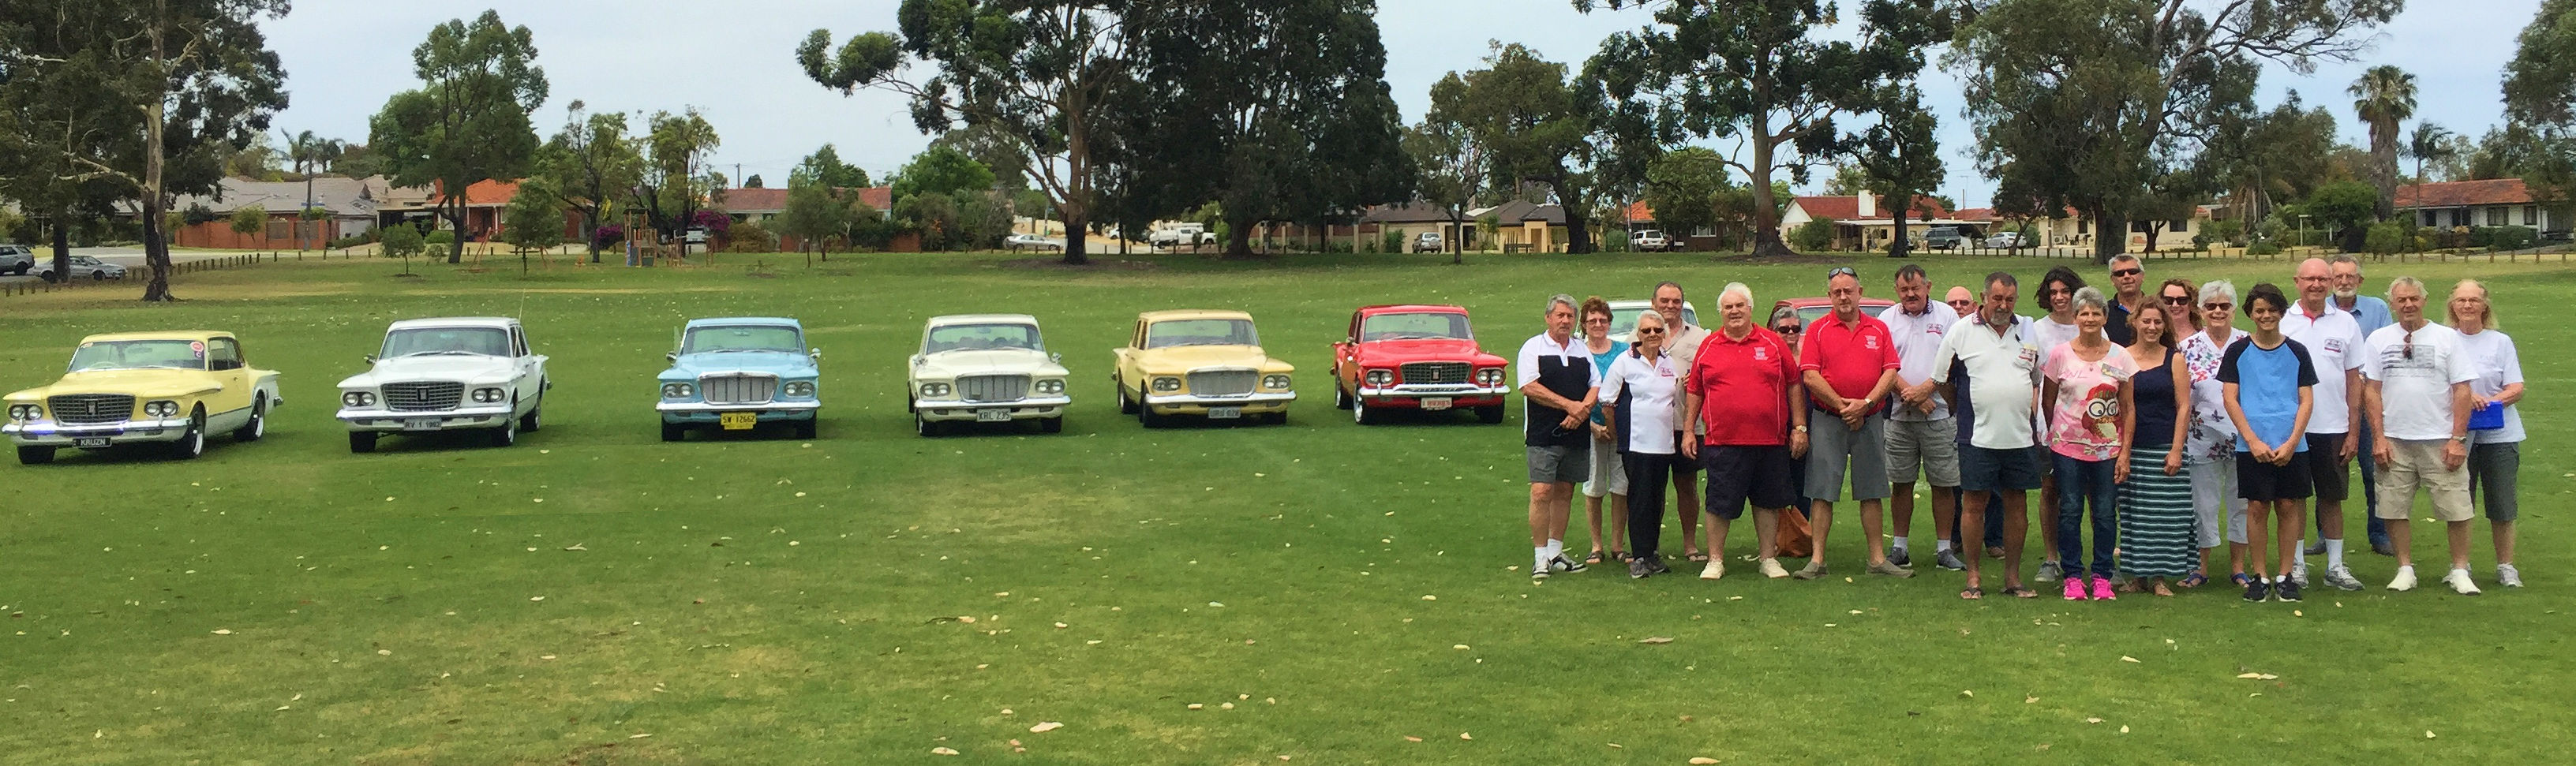 R&S Club members in front of cars